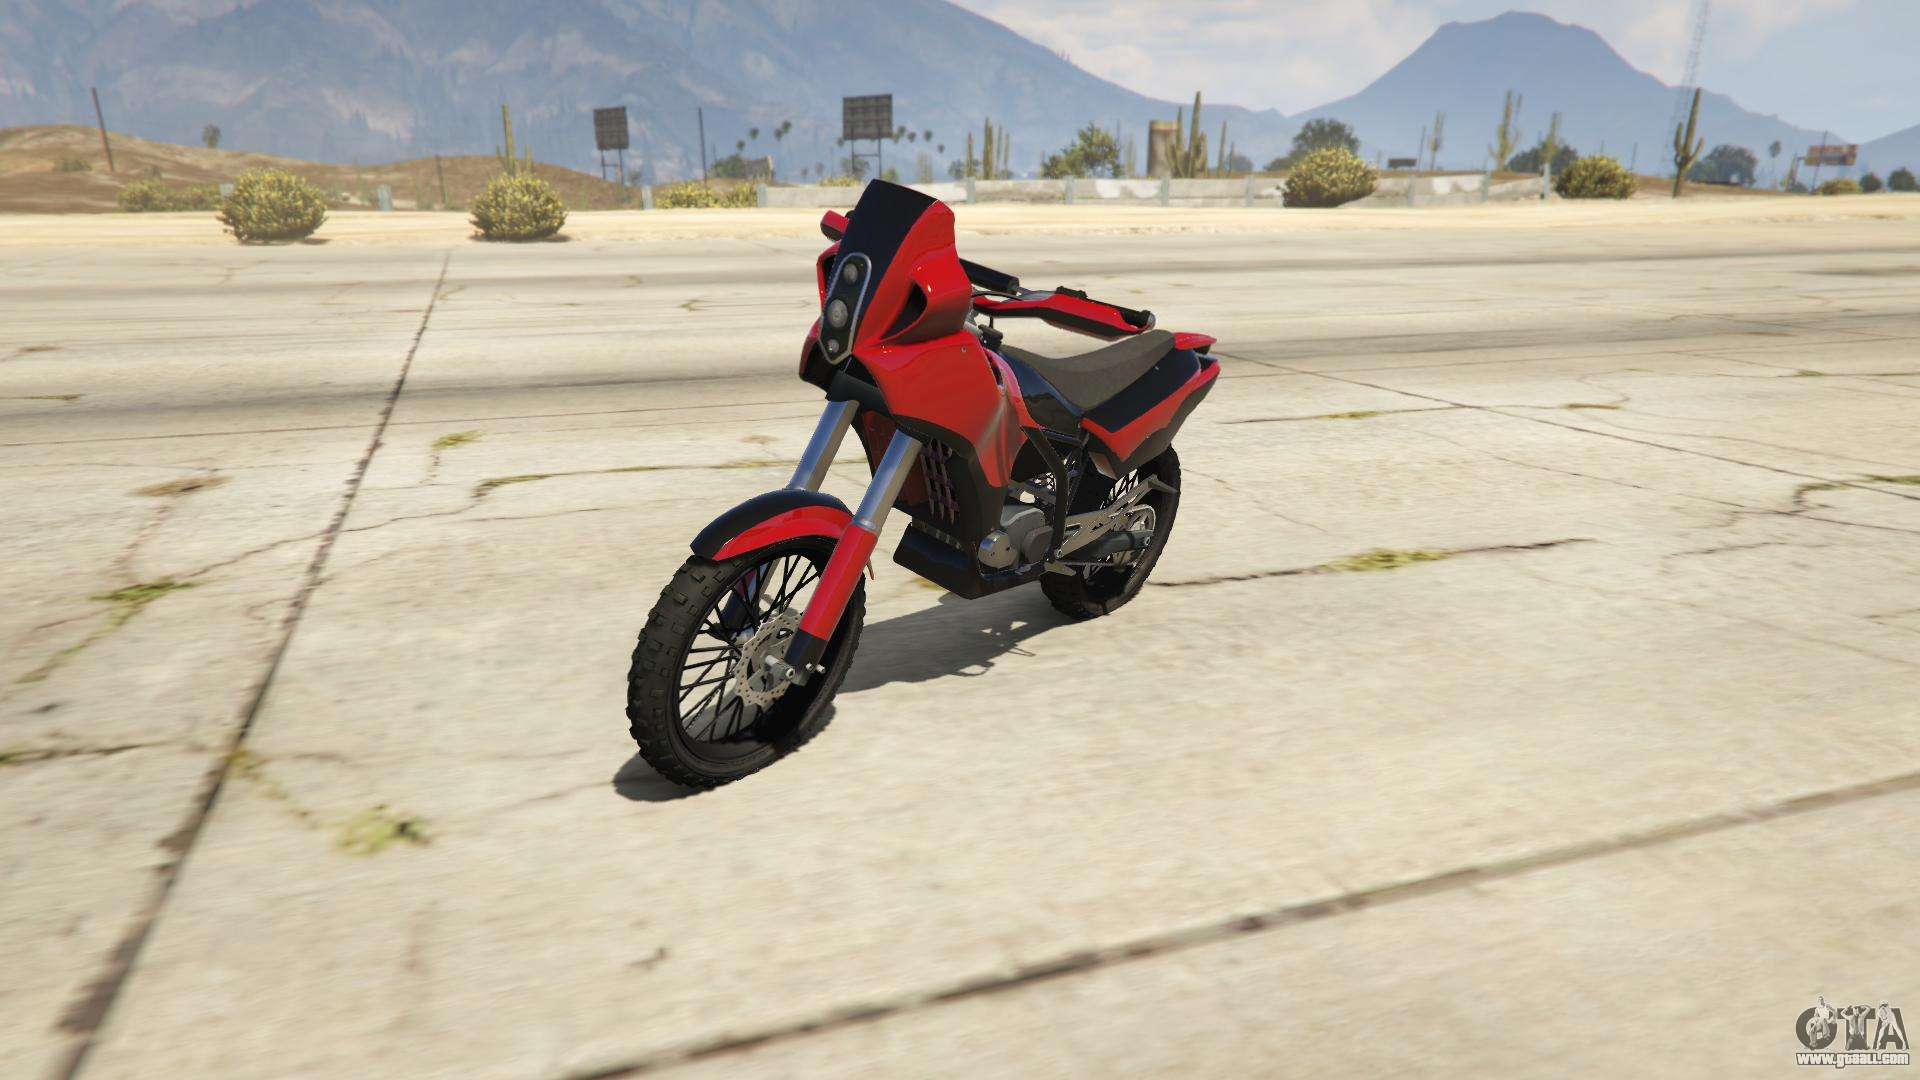 Nagasaki BF400 from GTA Online - front view